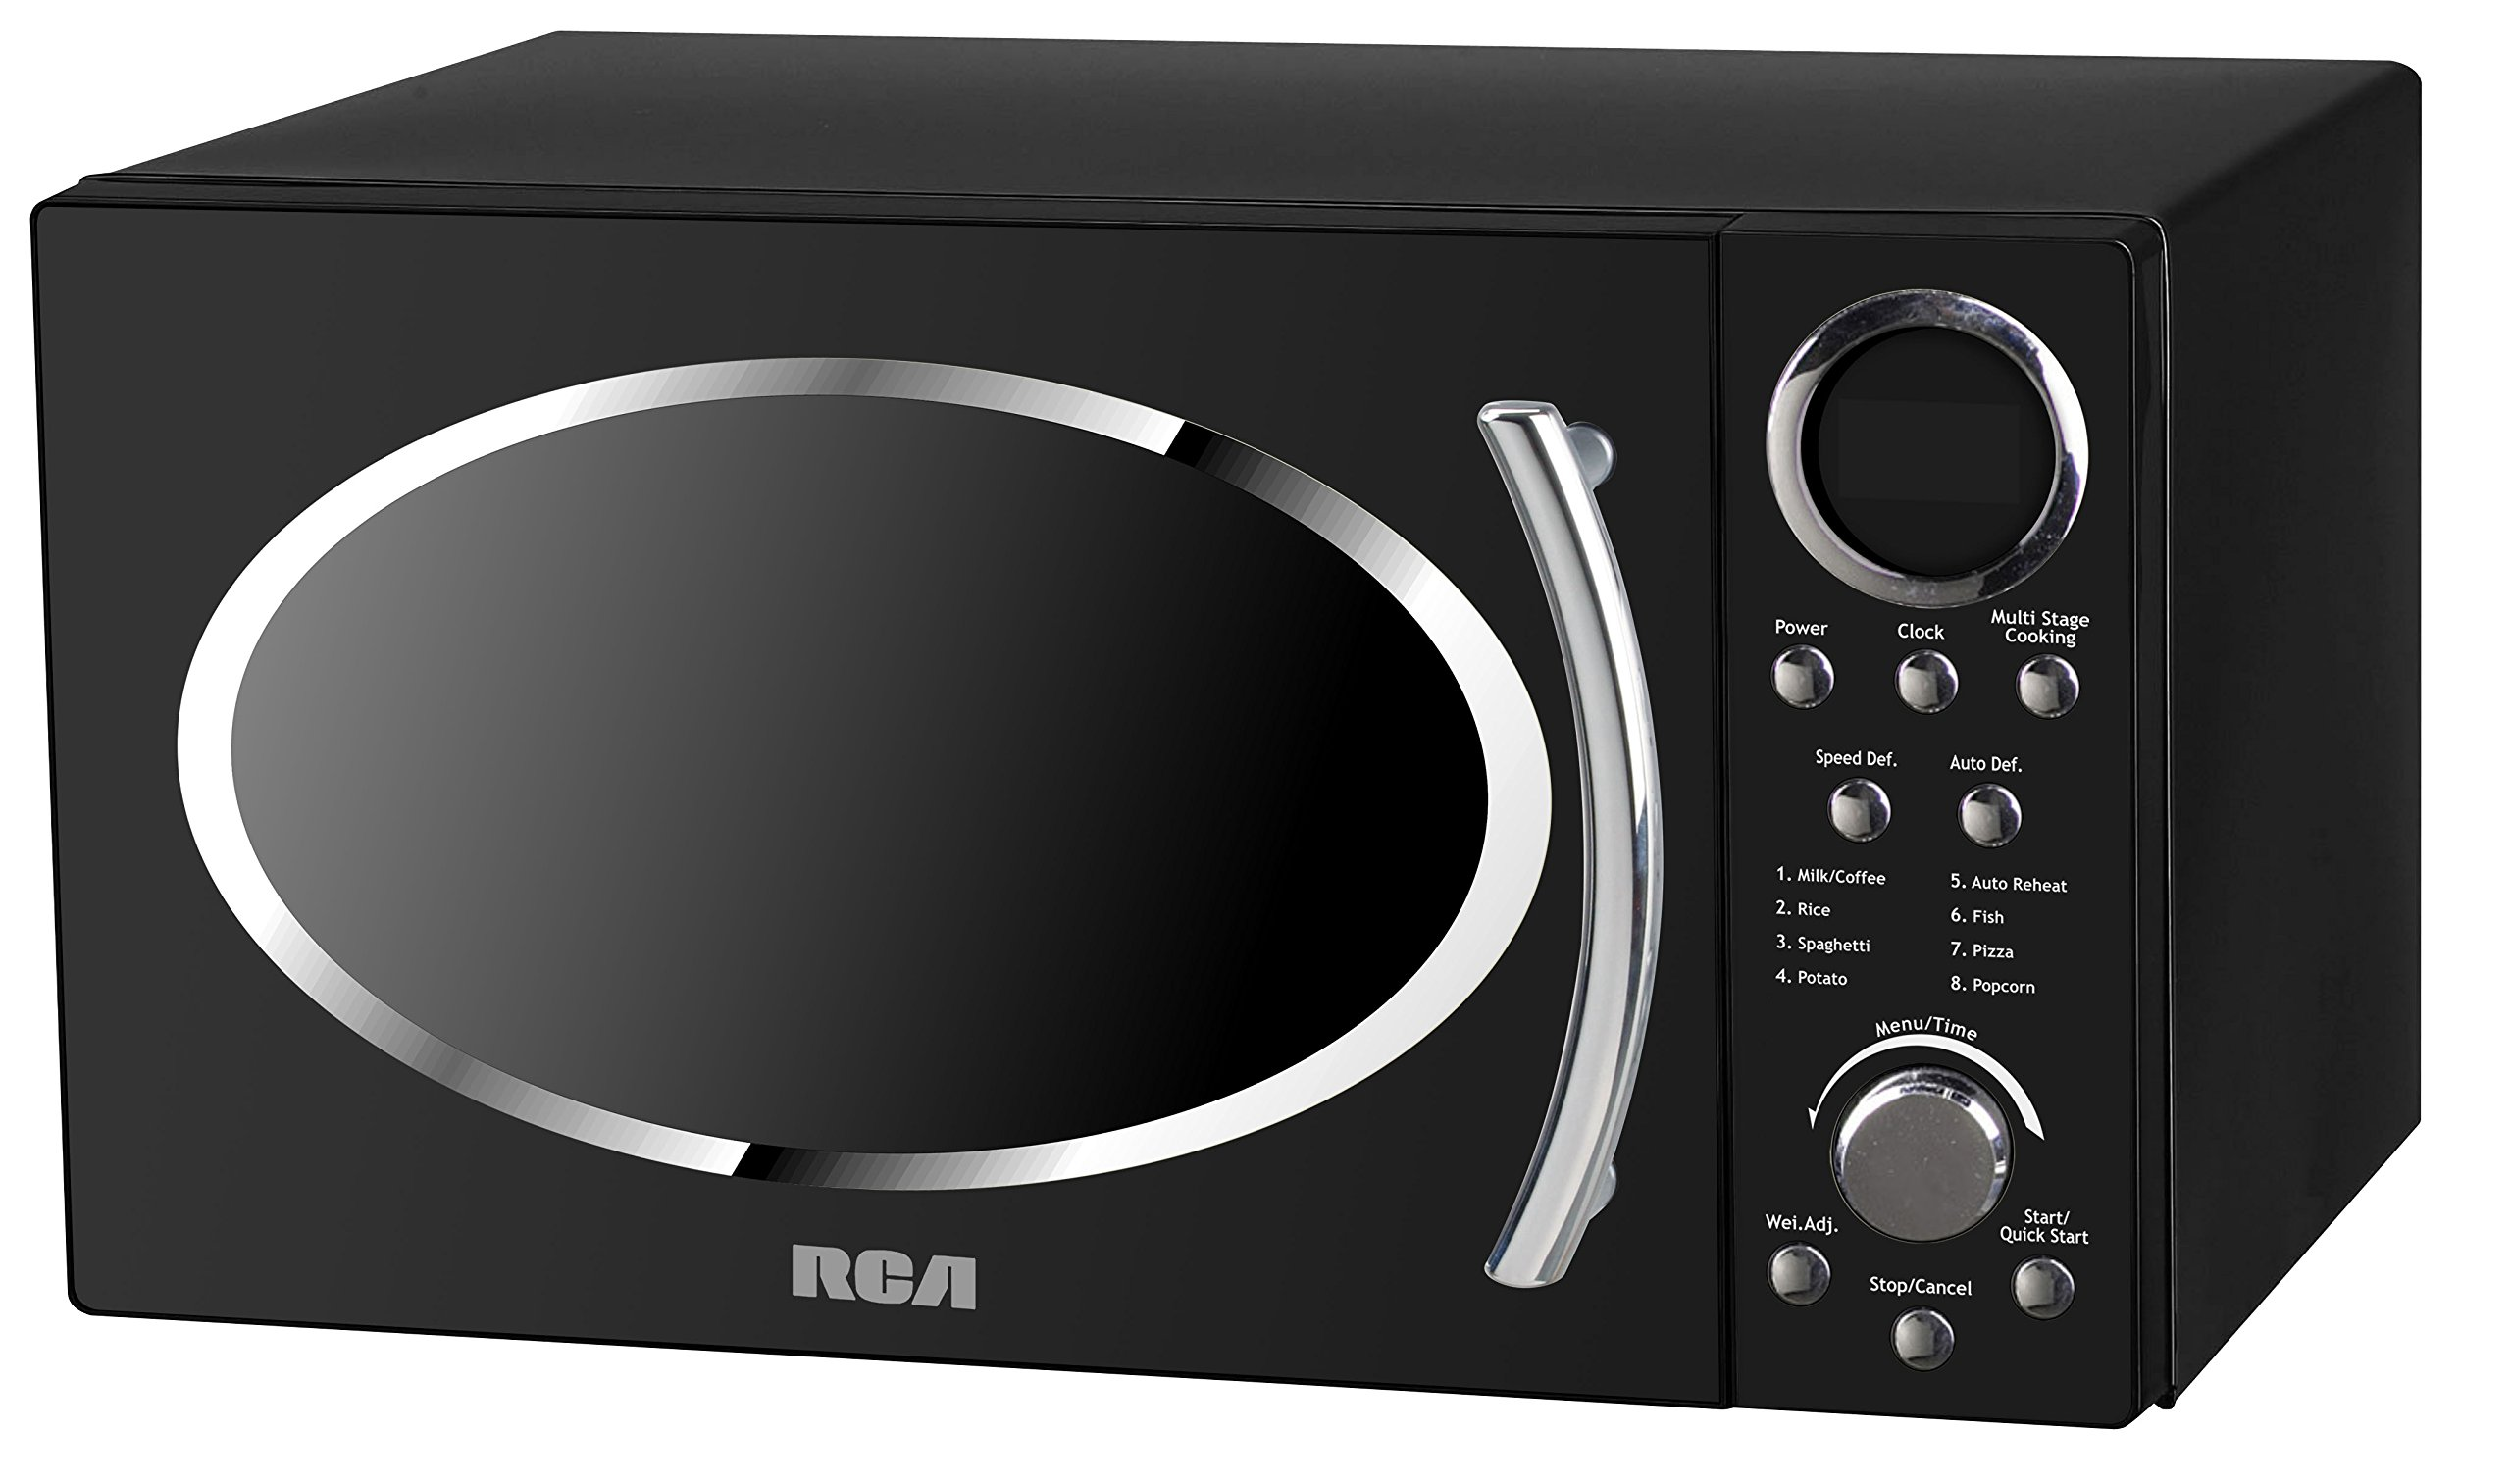 RCA RMW987-BLACK 0.9 cu. ft. Retro Microwave, Black